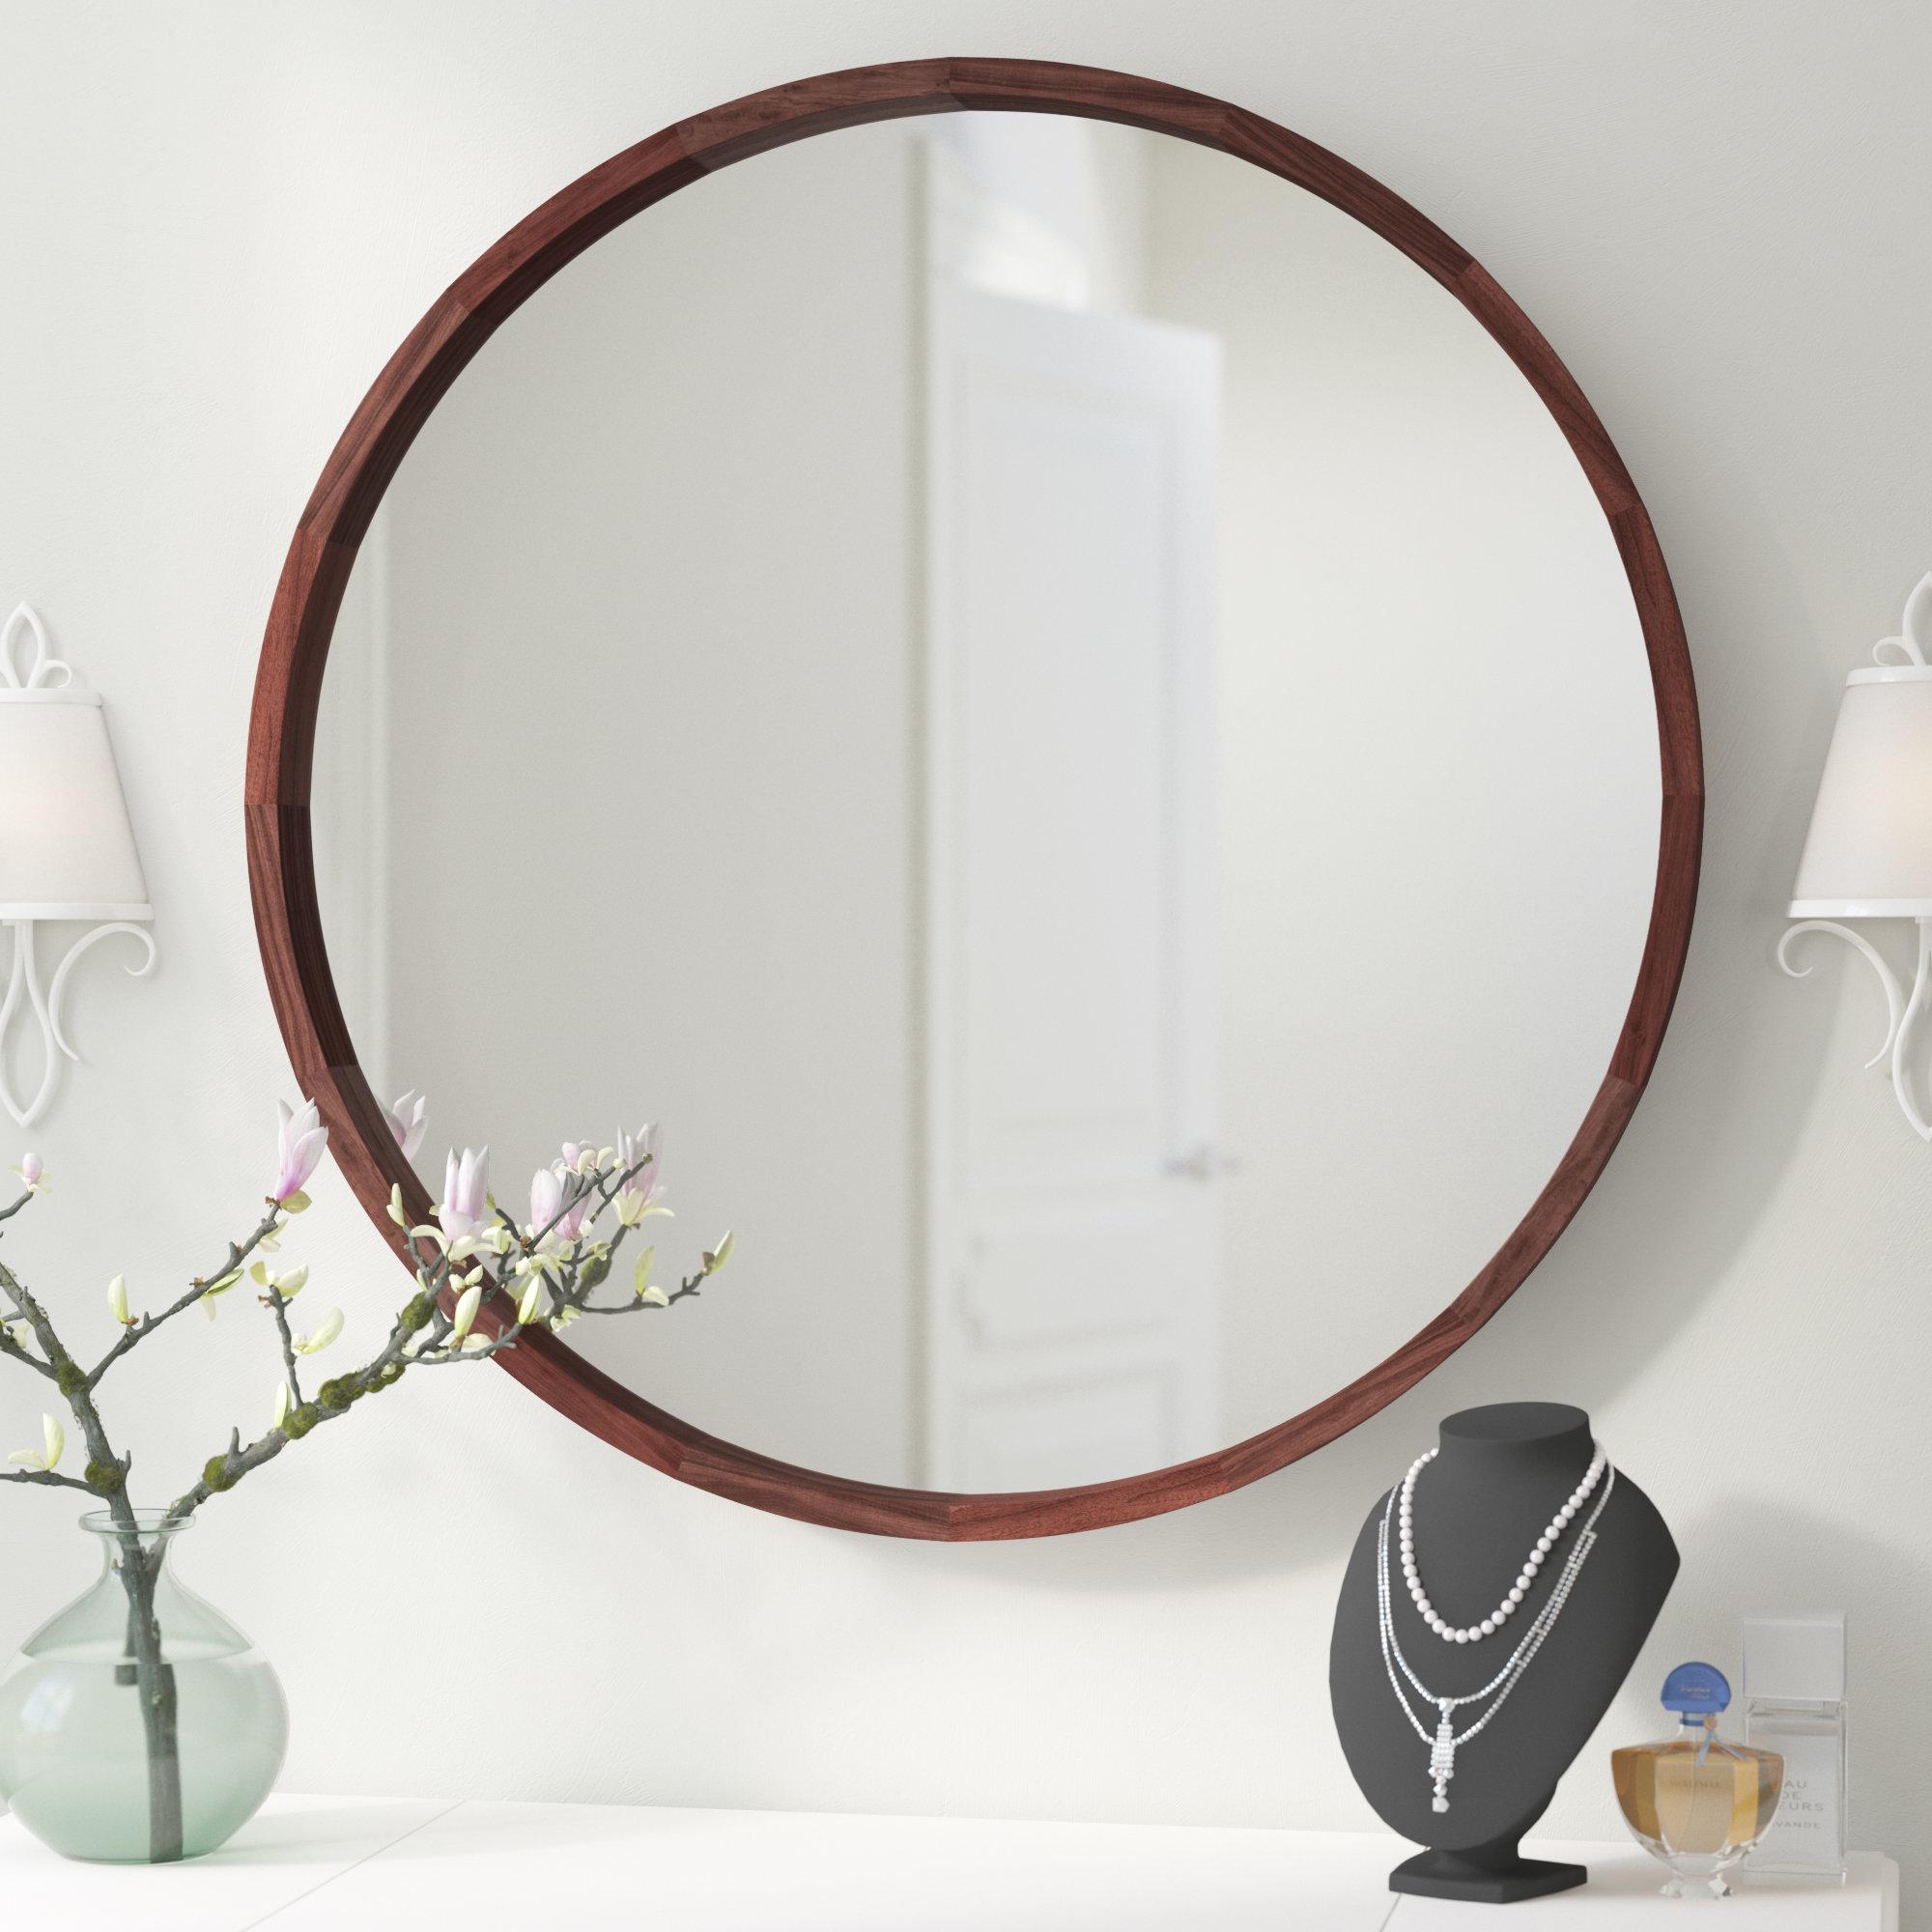 Loftis Modern & Contemporary Accent Wall Mirror throughout Minerva Accent Mirrors (Image 15 of 30)